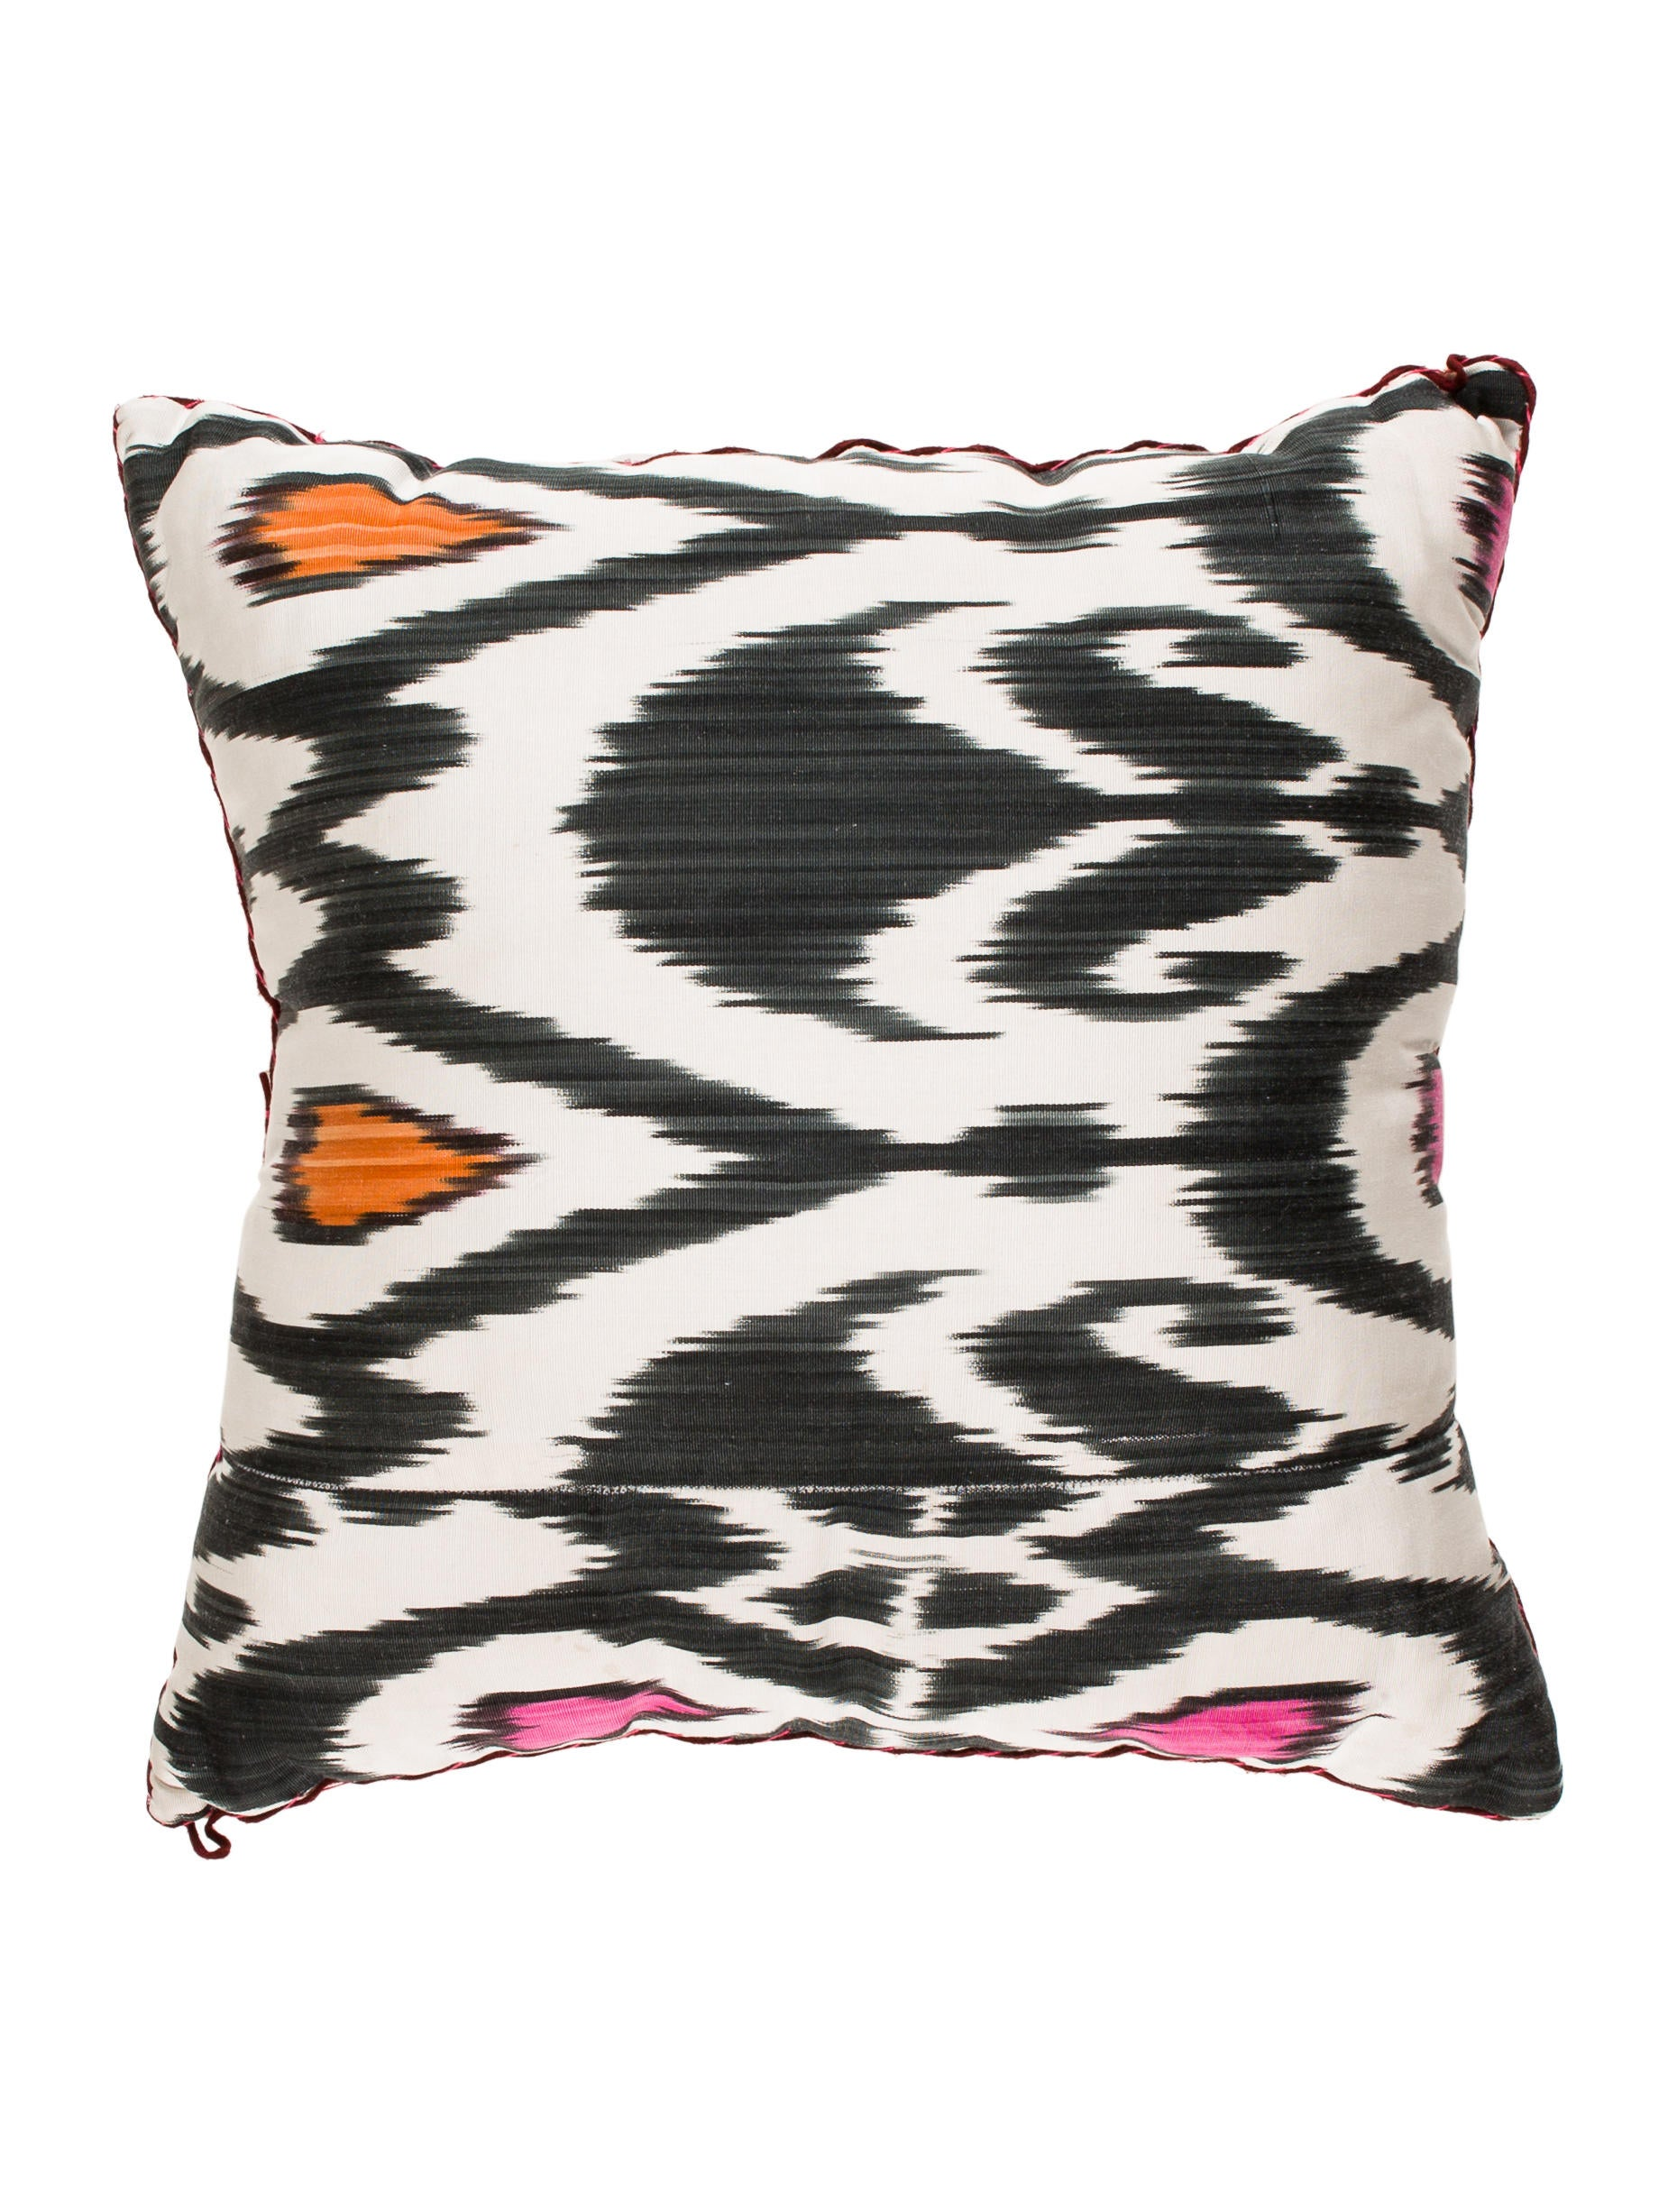 Madeline Weinrib Mother of Pearl-Embellished Throw Pillow - Pillows And Throws - MWR20028 The ...